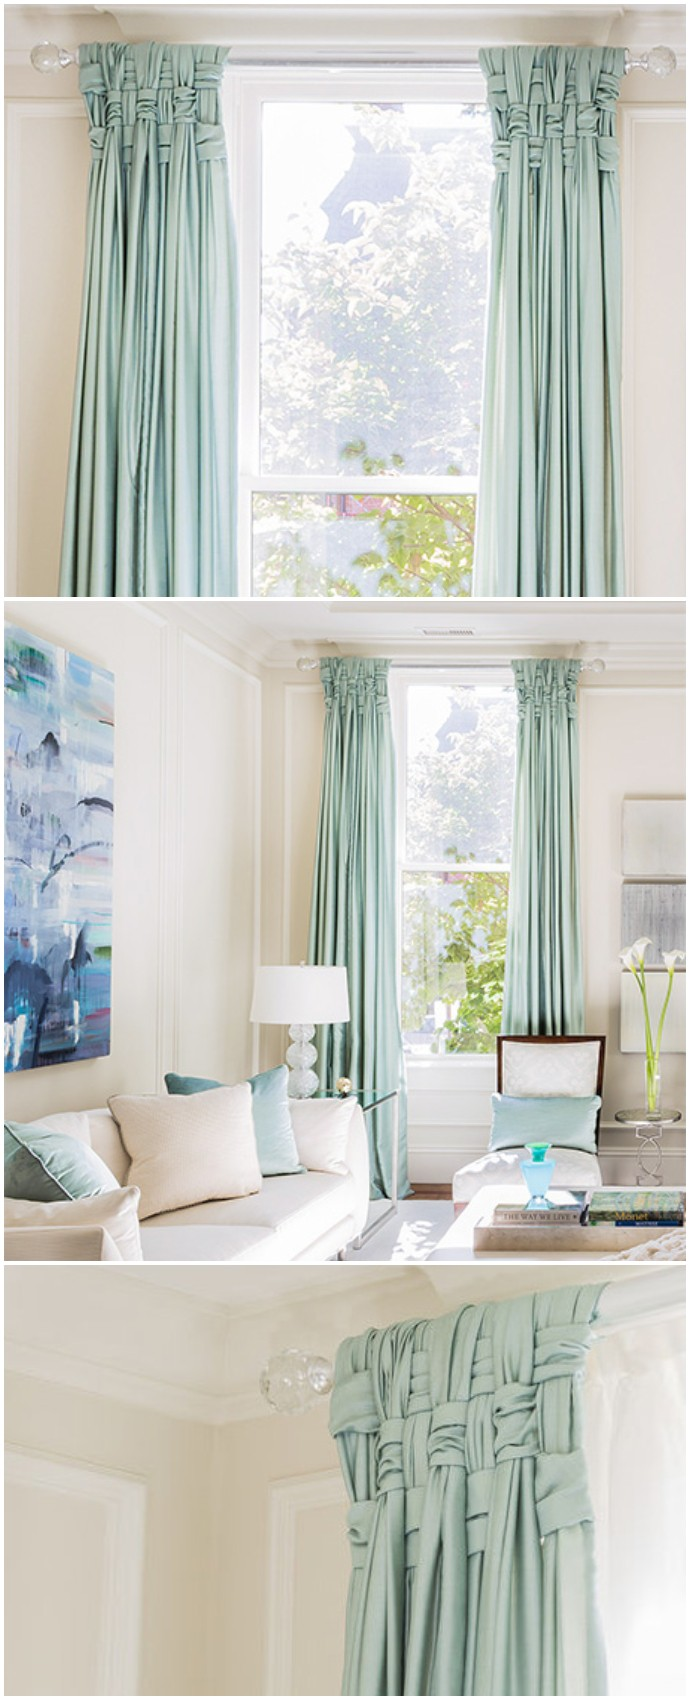 Curtains with a twist